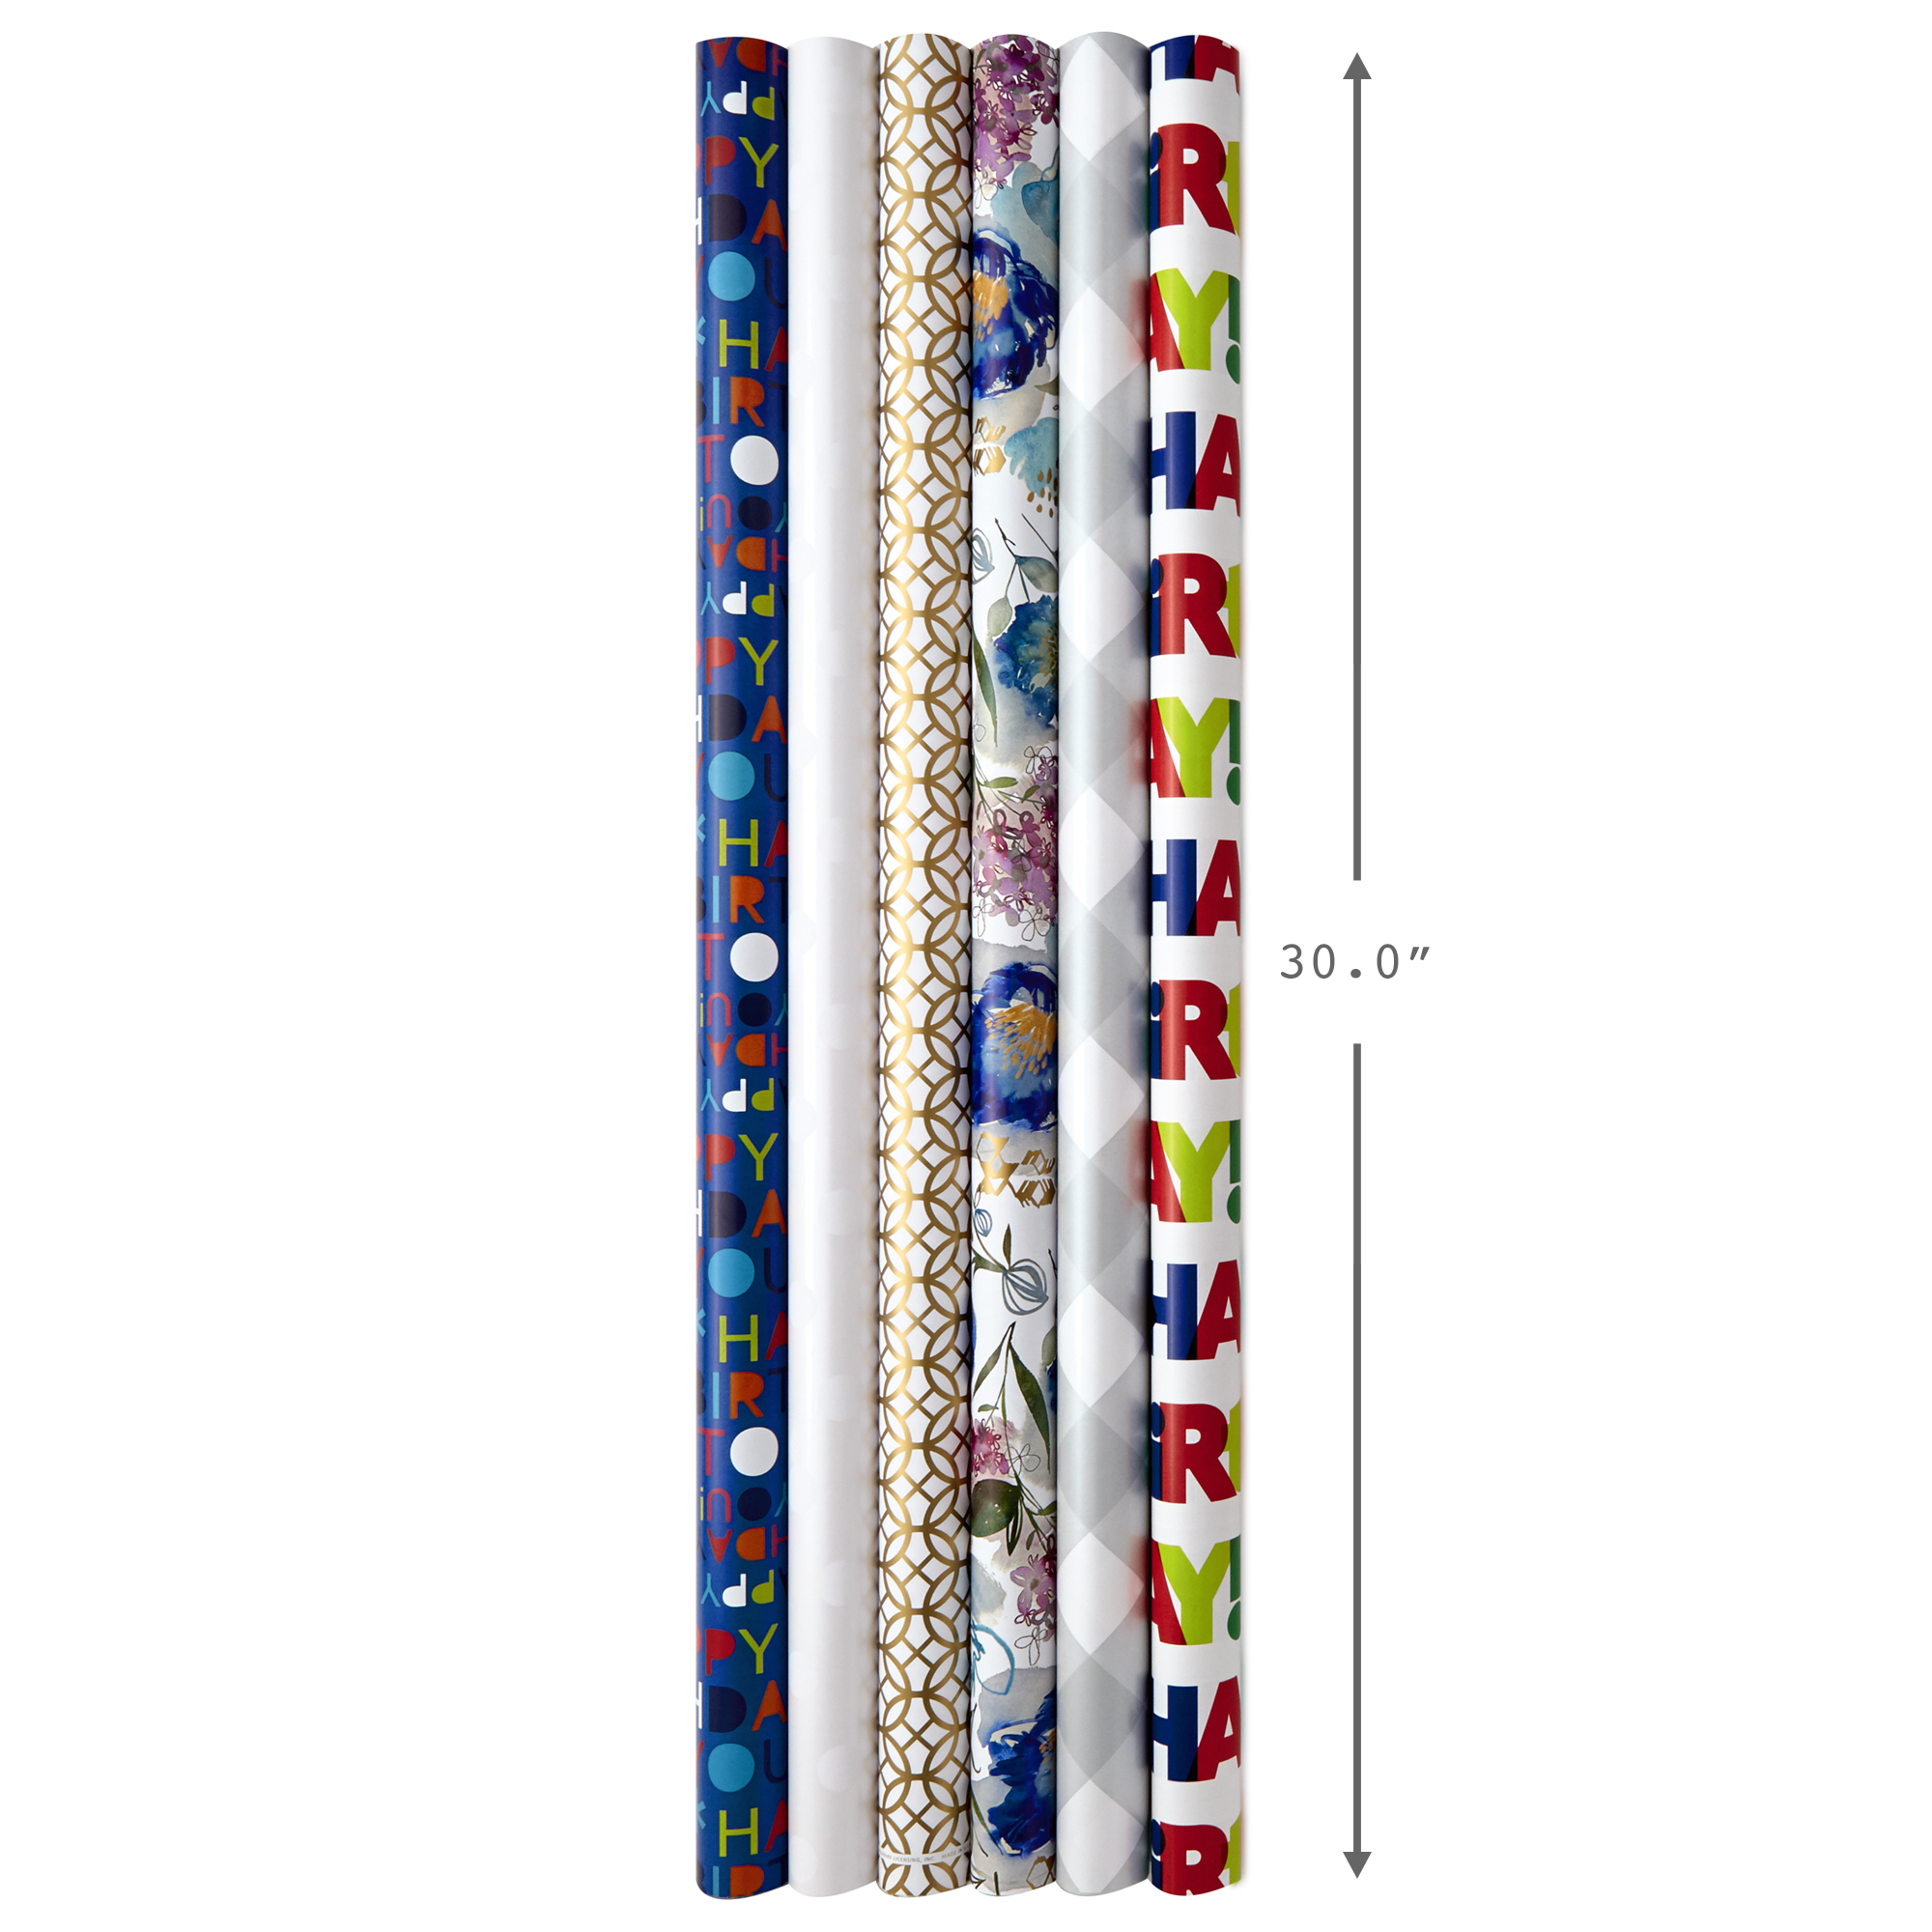 Hallmark All Occasion Wrapping Paper Bundle with Cut Lines on Reverse, Solids & Patterns—Birthday, Holiday, Wedding (Pack of 6, 180 sq. ft. ttl.)